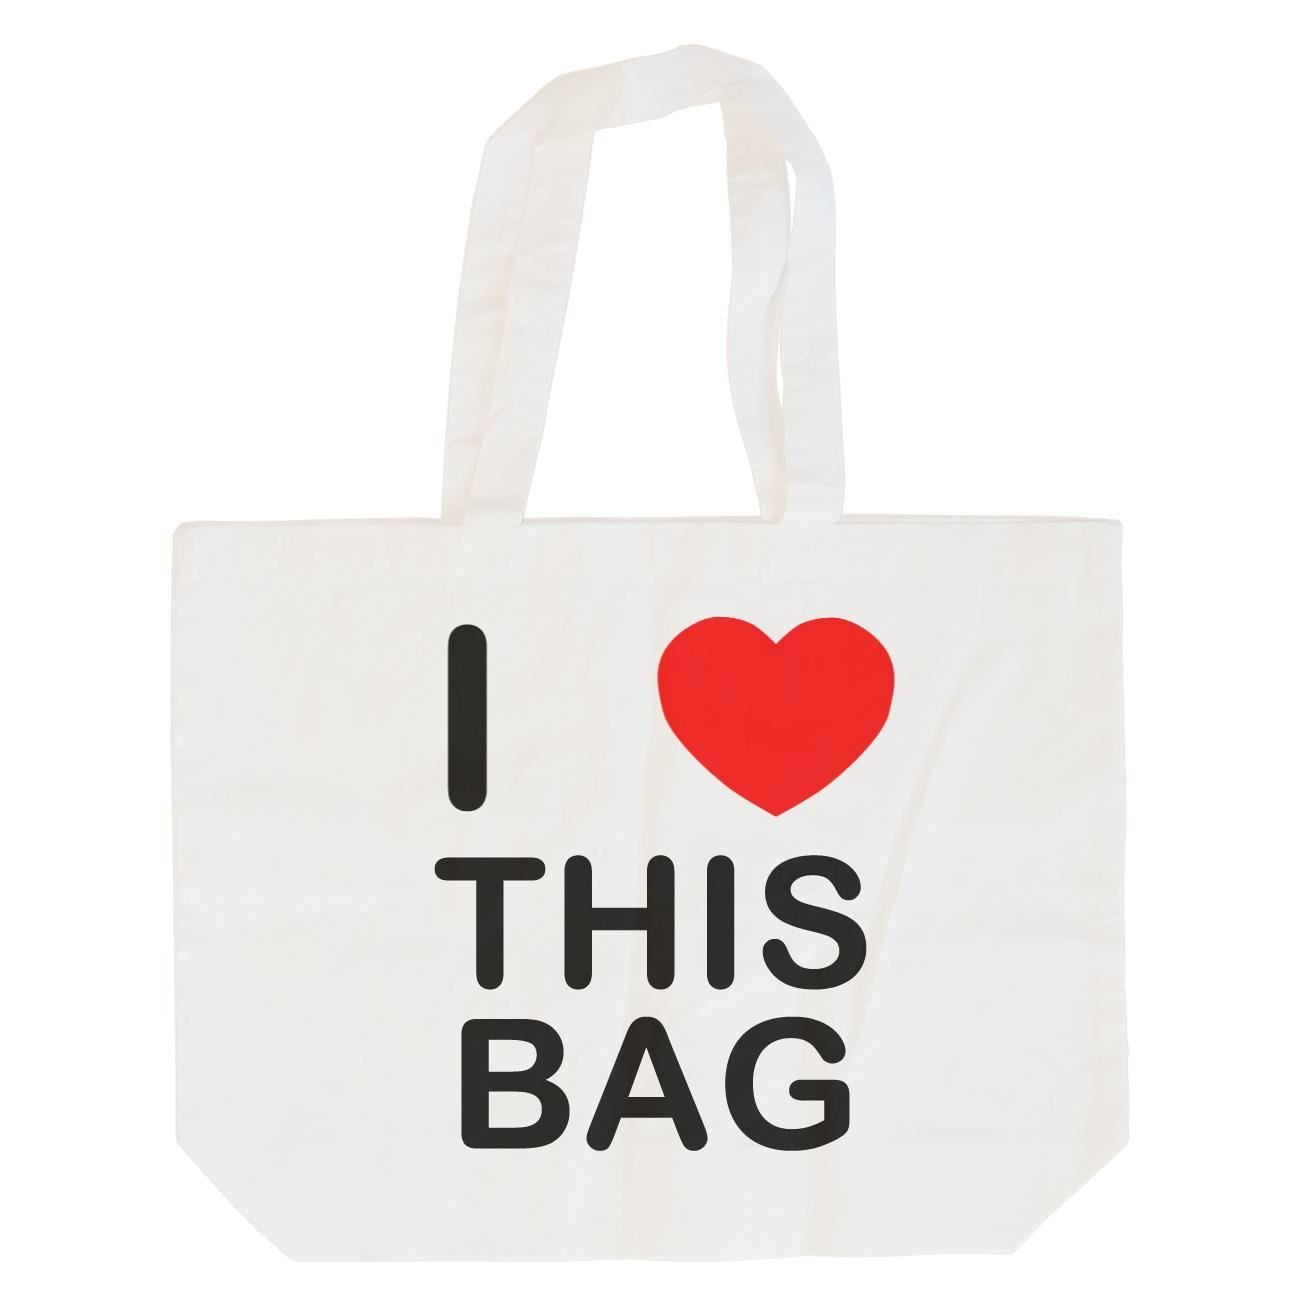 I Love This Bag - Cotton Bag | Size choice Tote, Shopper or Sling